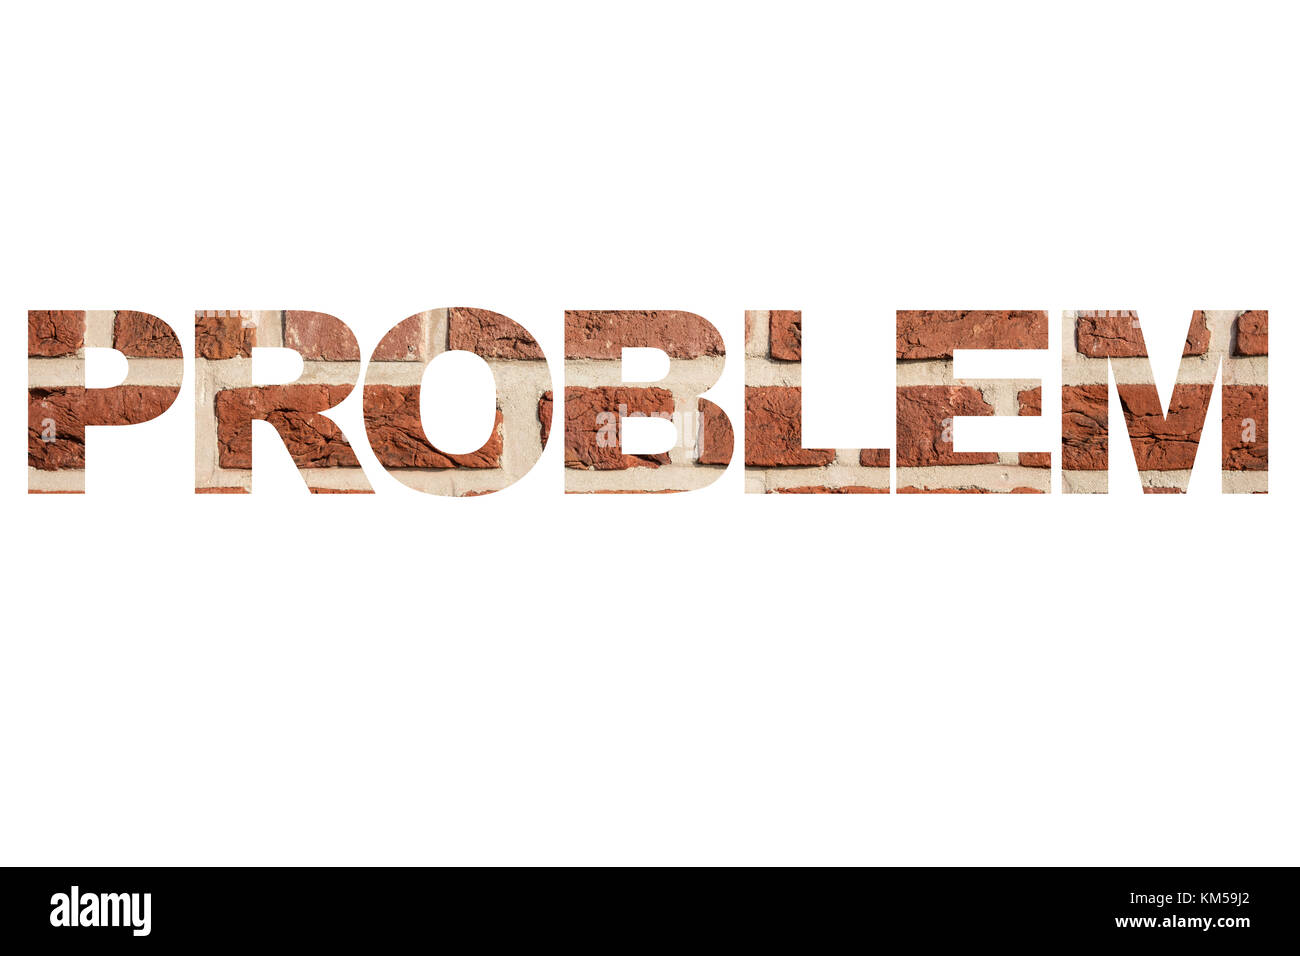 Word 'Problem' with texture of red brick wall. - Stock Image